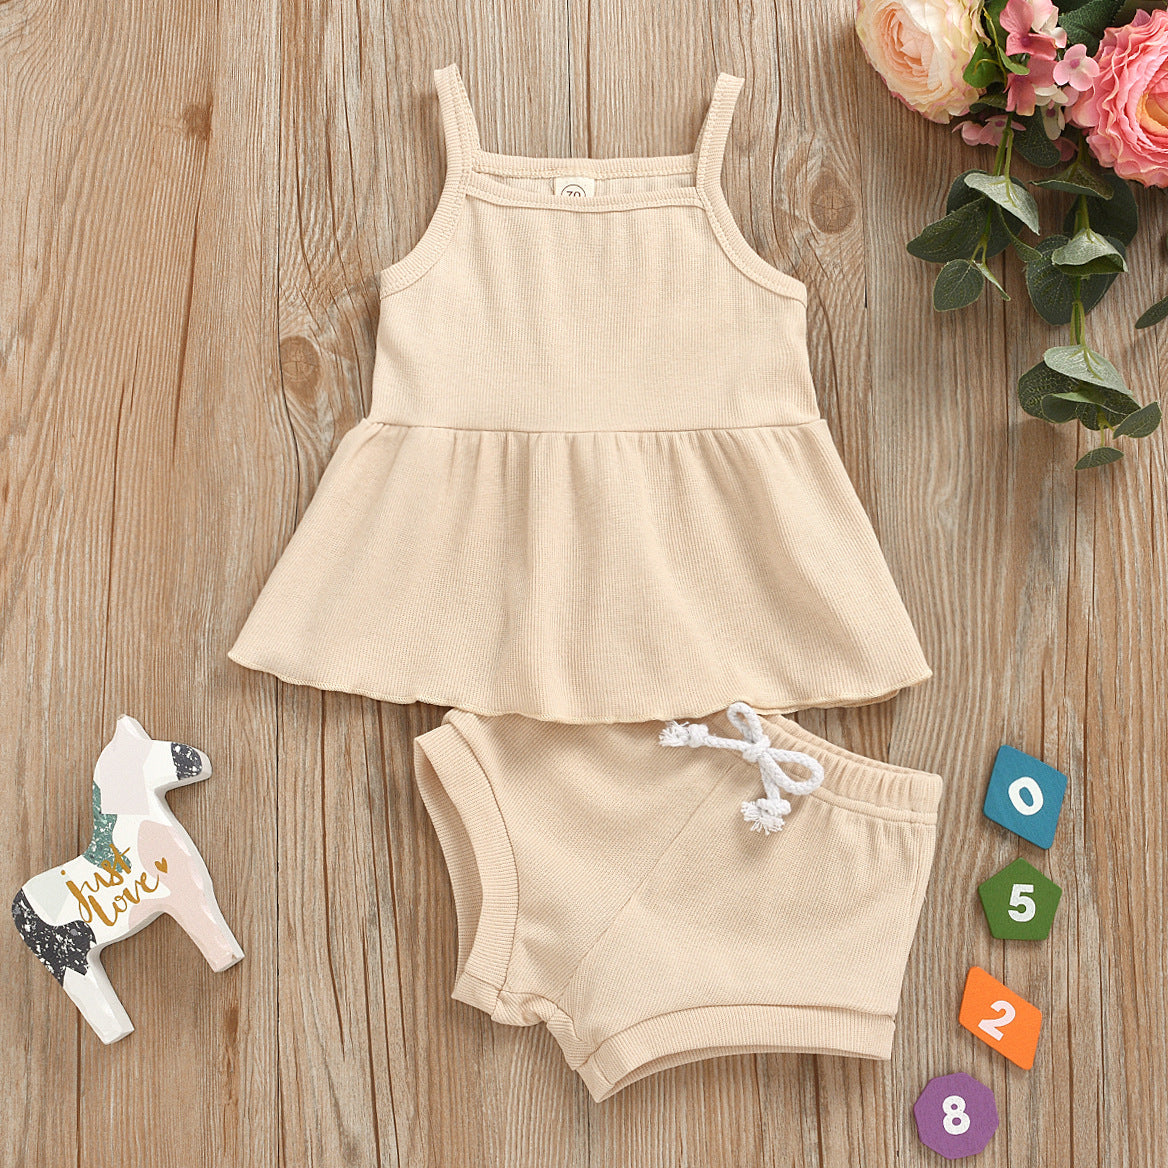 Baby Summer Clothing Newborn Baby Girls Casual Sleeveless Solid organic cotton Tops + Shorts 2pcs Clothes Set 1-3Years